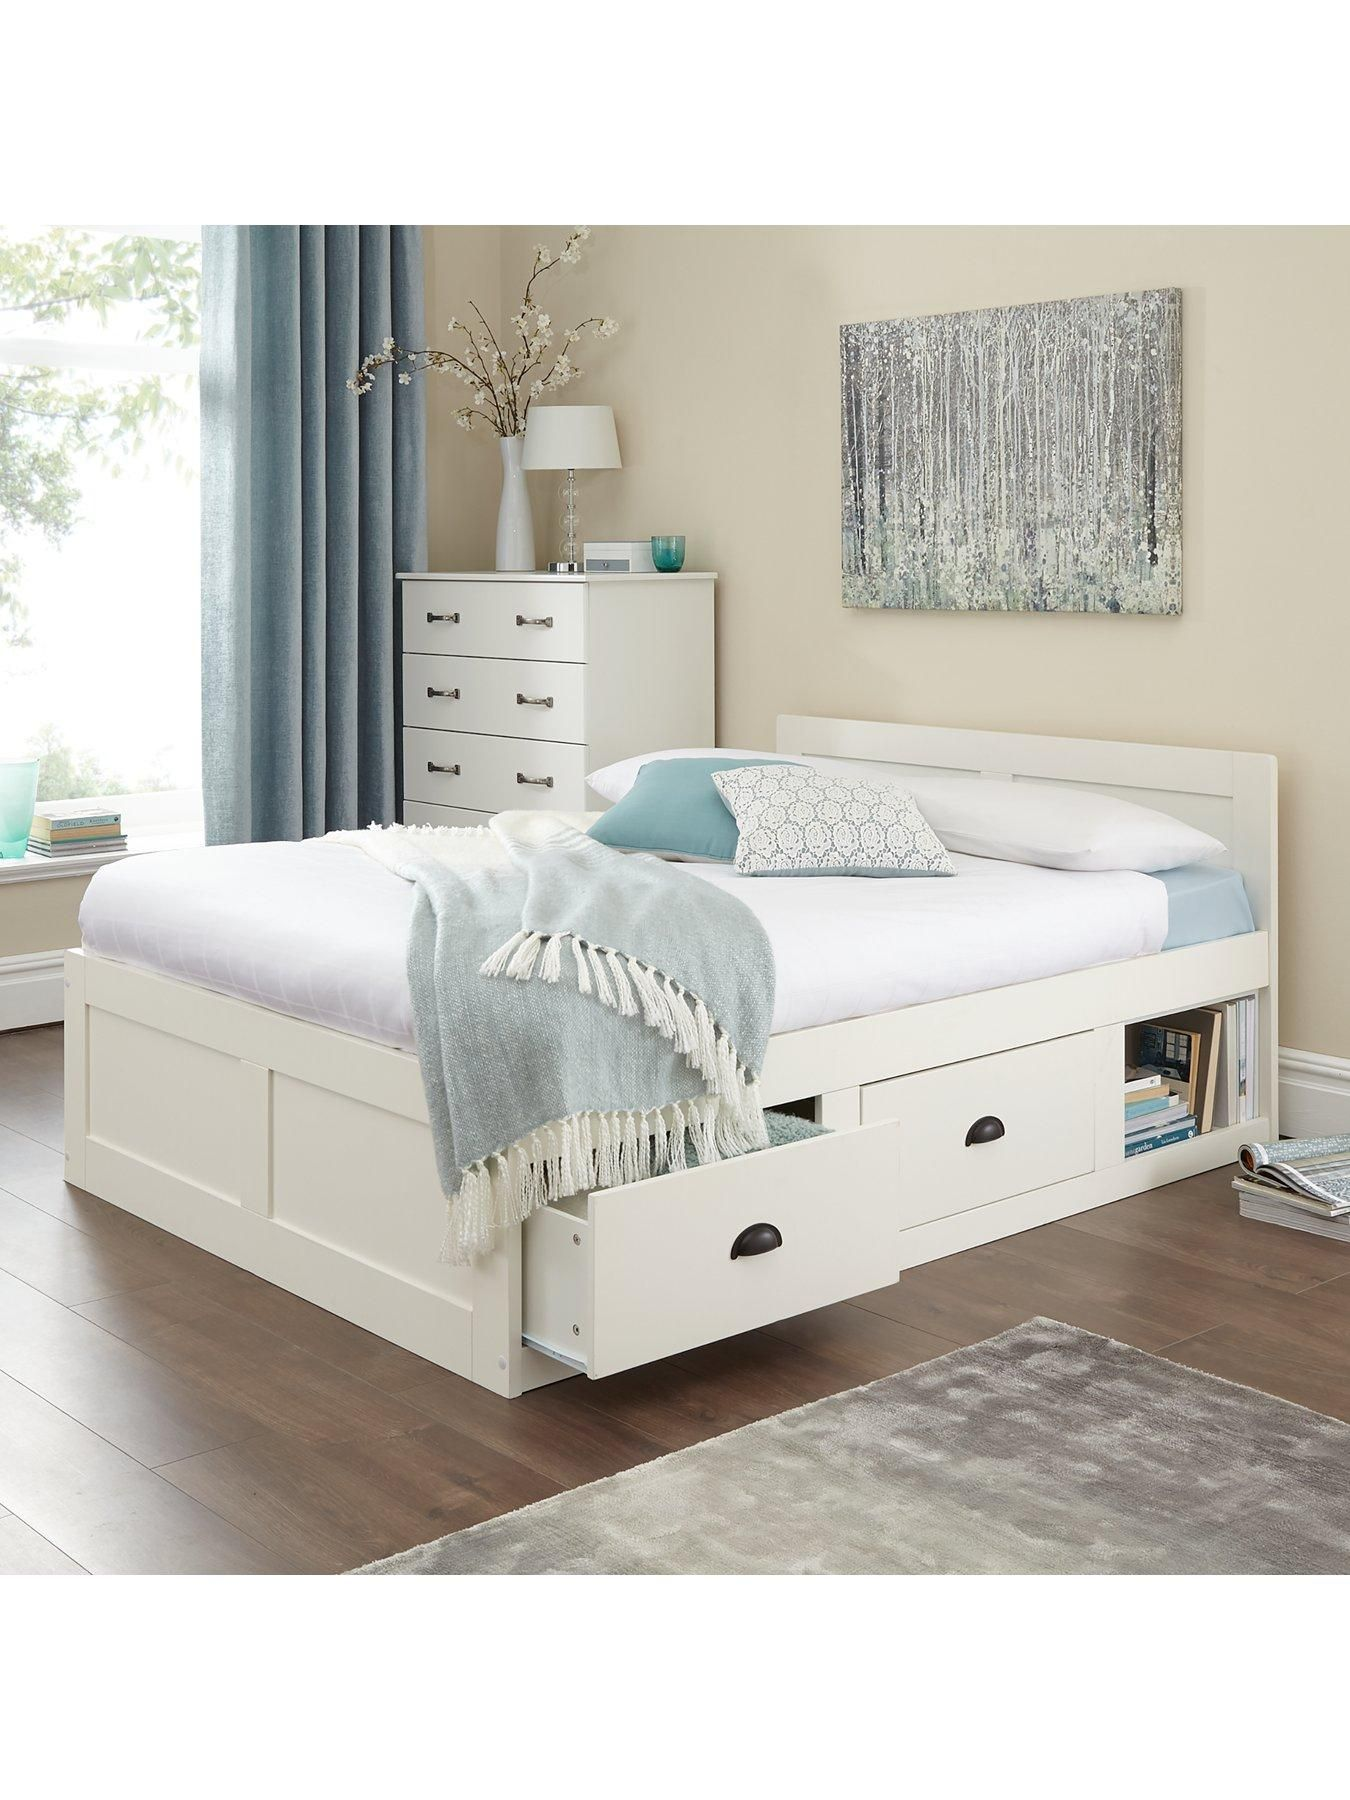 fc331e50aa36 Petra Oak King Size Bed Frame With 2 Drawers | home sweet home | Bed ...